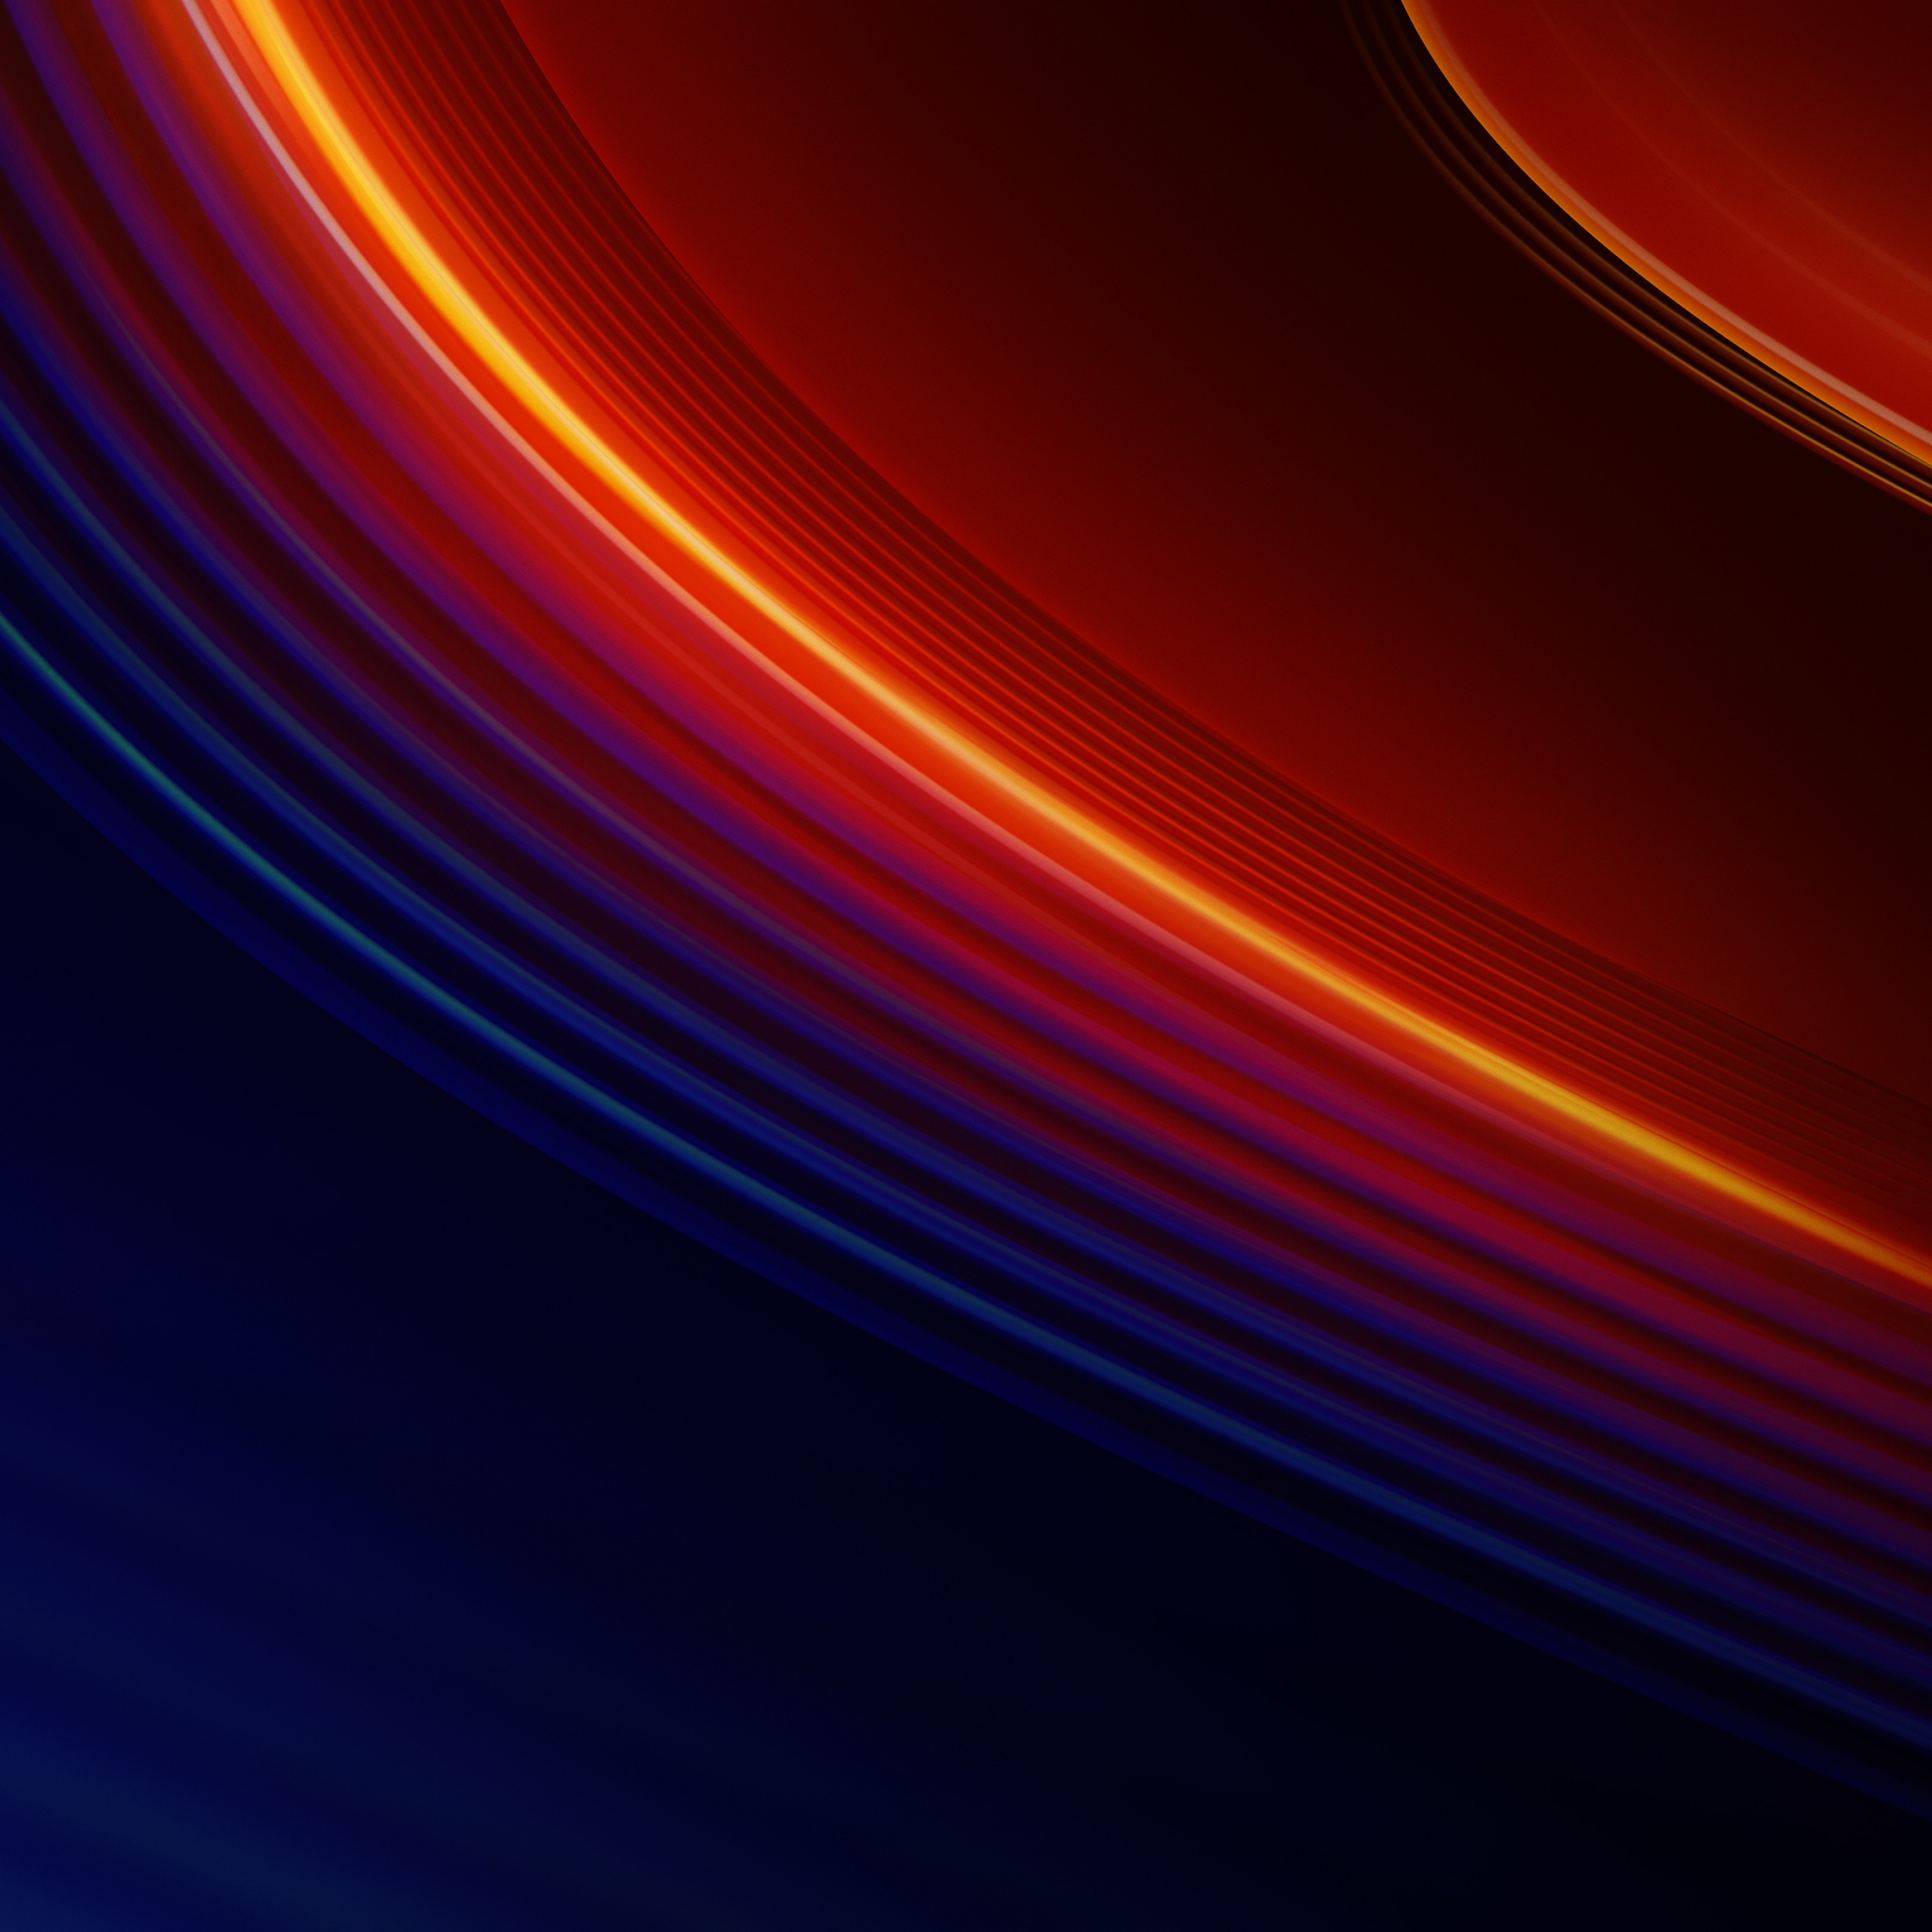 4K Wallpaper OnePlus 8 Pro, Stock, Lines, 2020, Abstract, #510